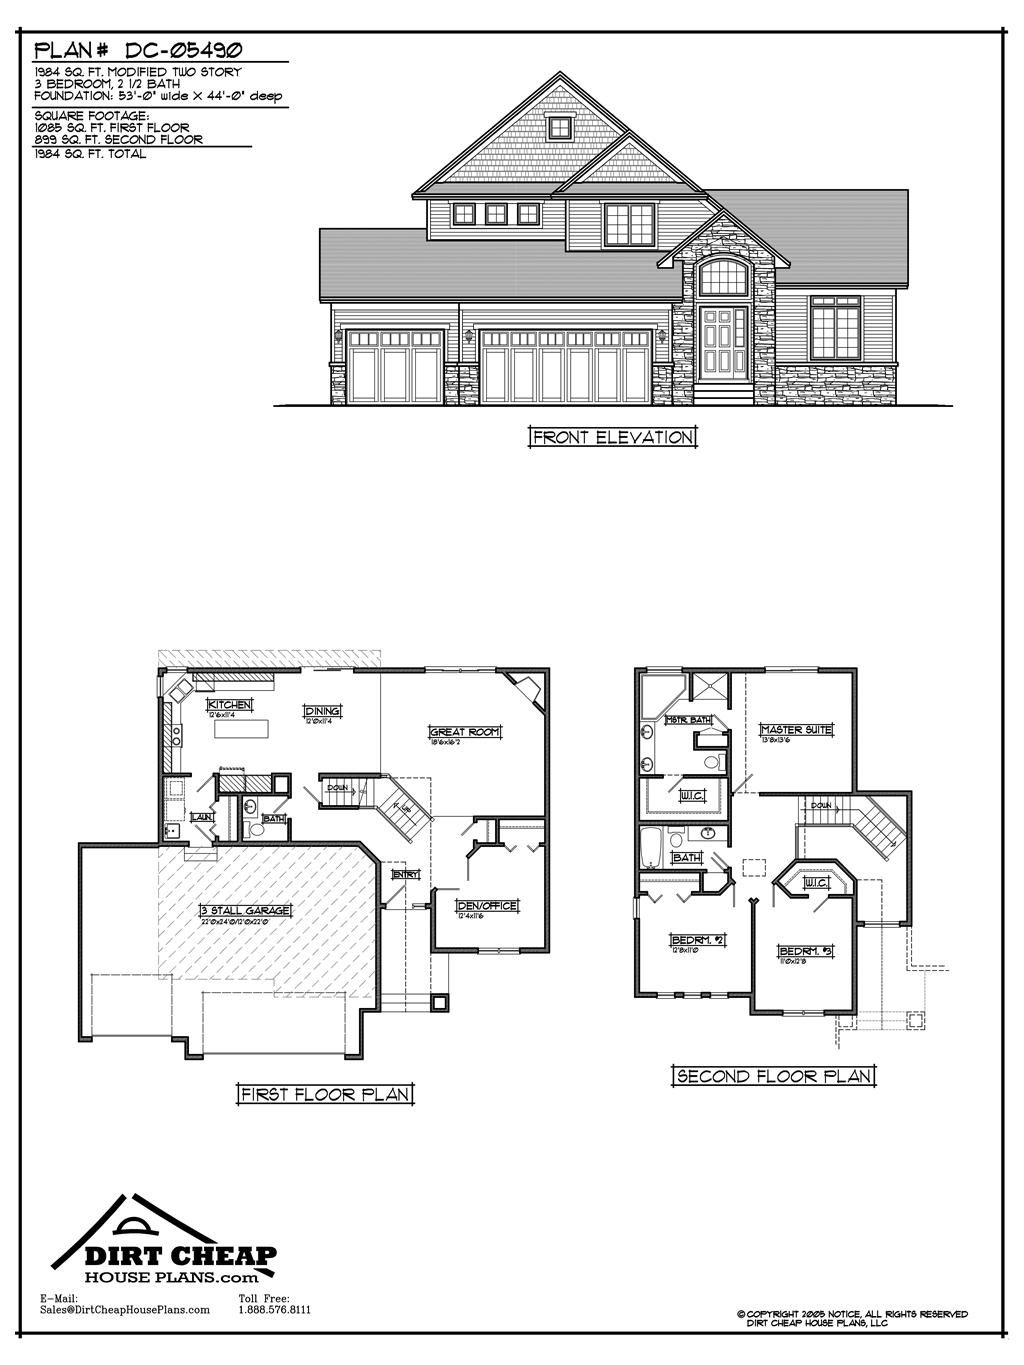 two story house plans with basement dc 05490 modified two story full basement inexpensive house plans house plans 6324